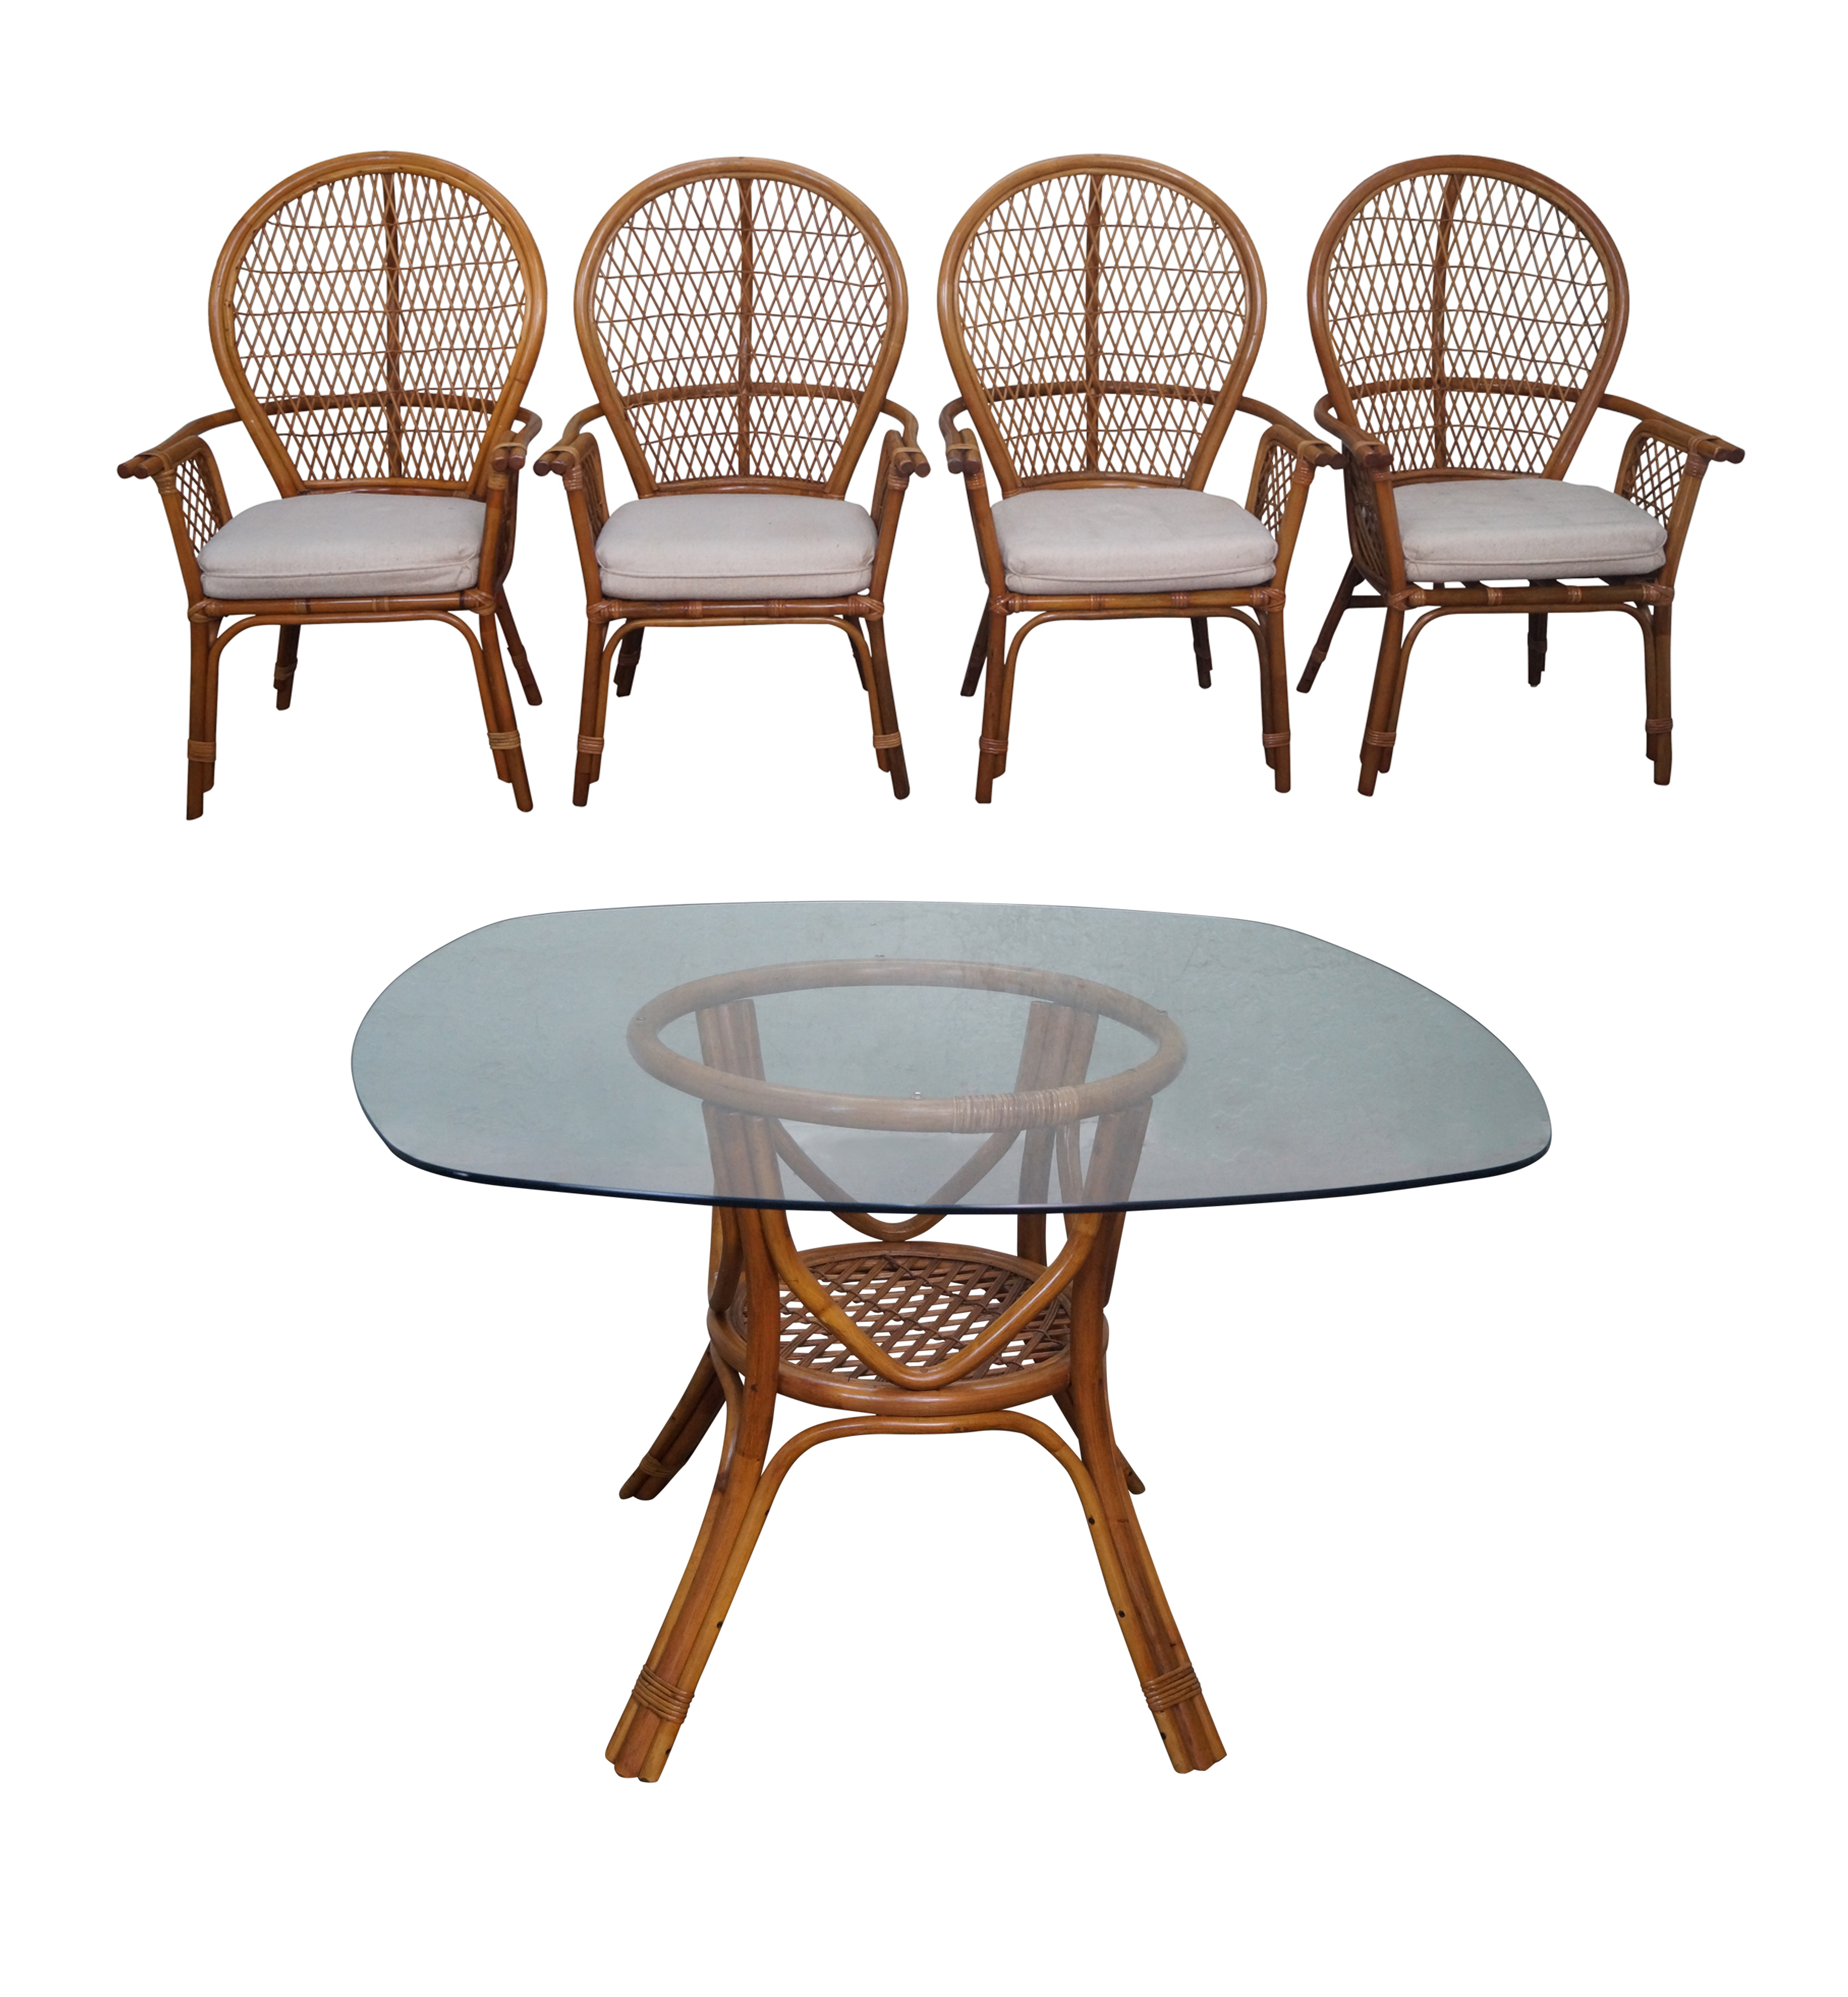 Vintage Rattan Glass Top Dining Table U0026 Chair Set AGE/COUNTRY OF ORIGIN:  Approx